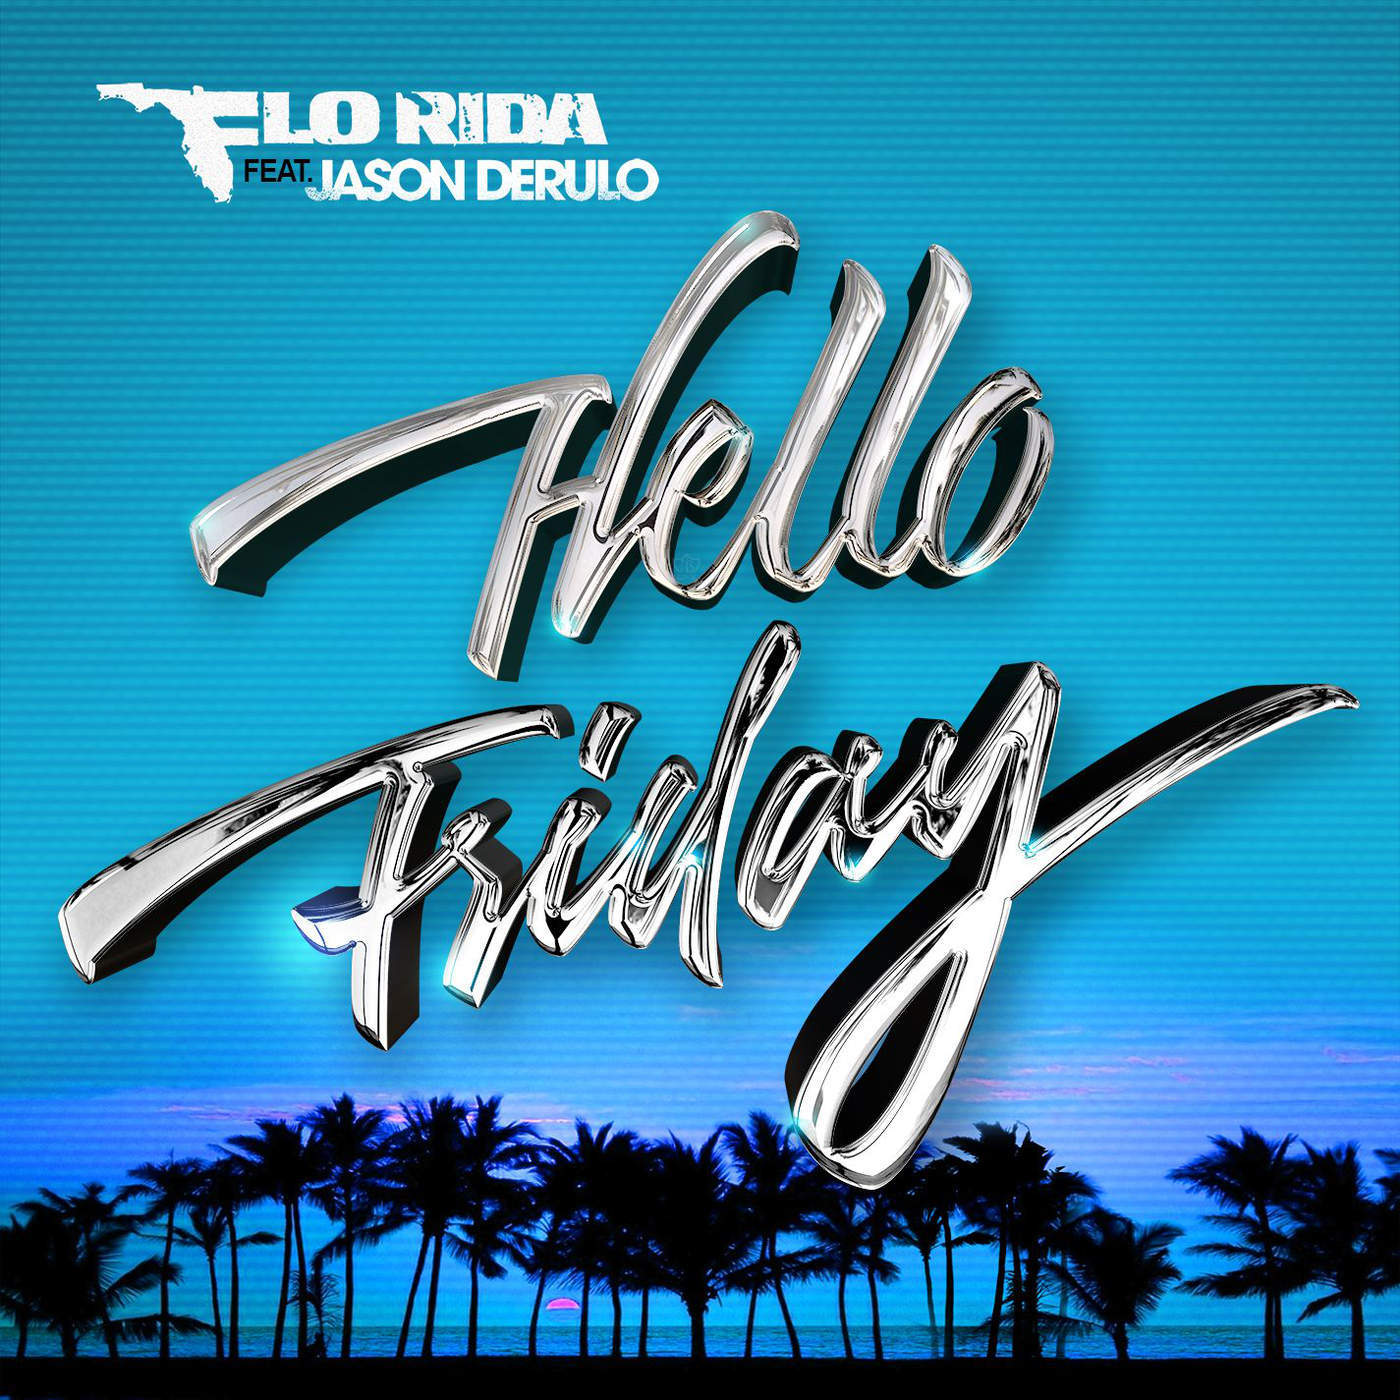 Flo Rida - Hello Friday (feat. Jason Derulo) - Single Cover